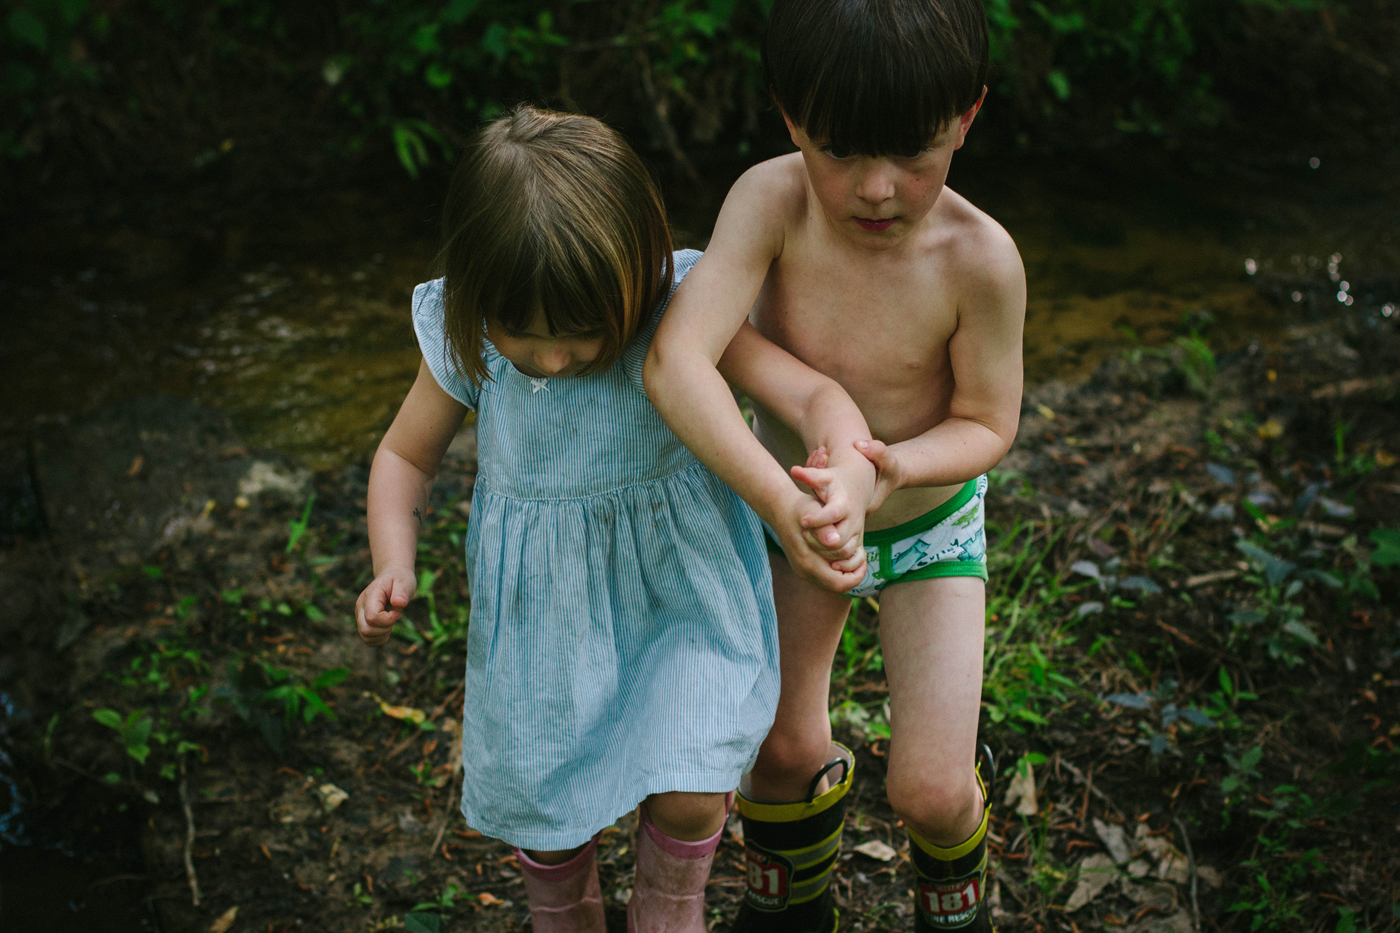 'Cousin Connection' by Kaleen Enke